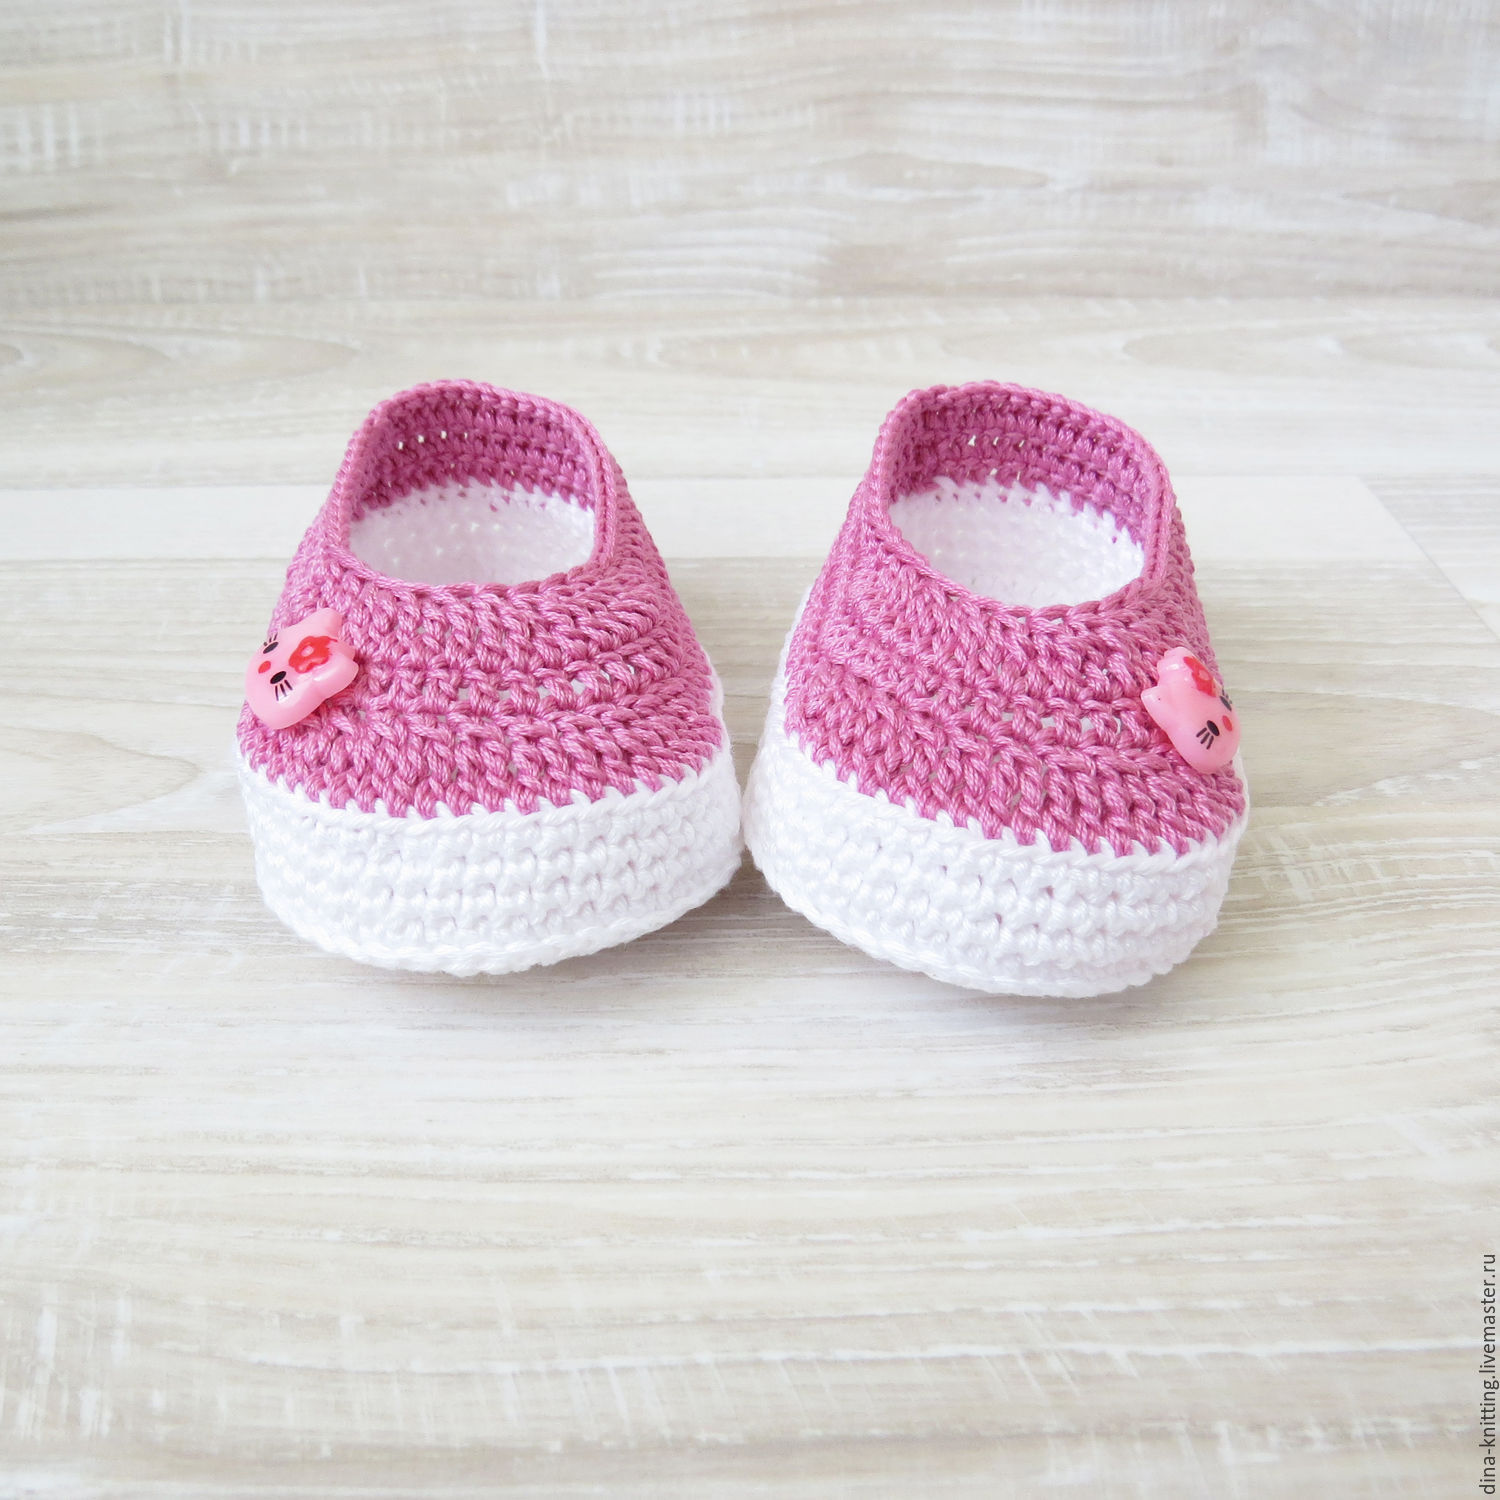 booties knitted booties girls baby booties baby ballet shoes pink ...